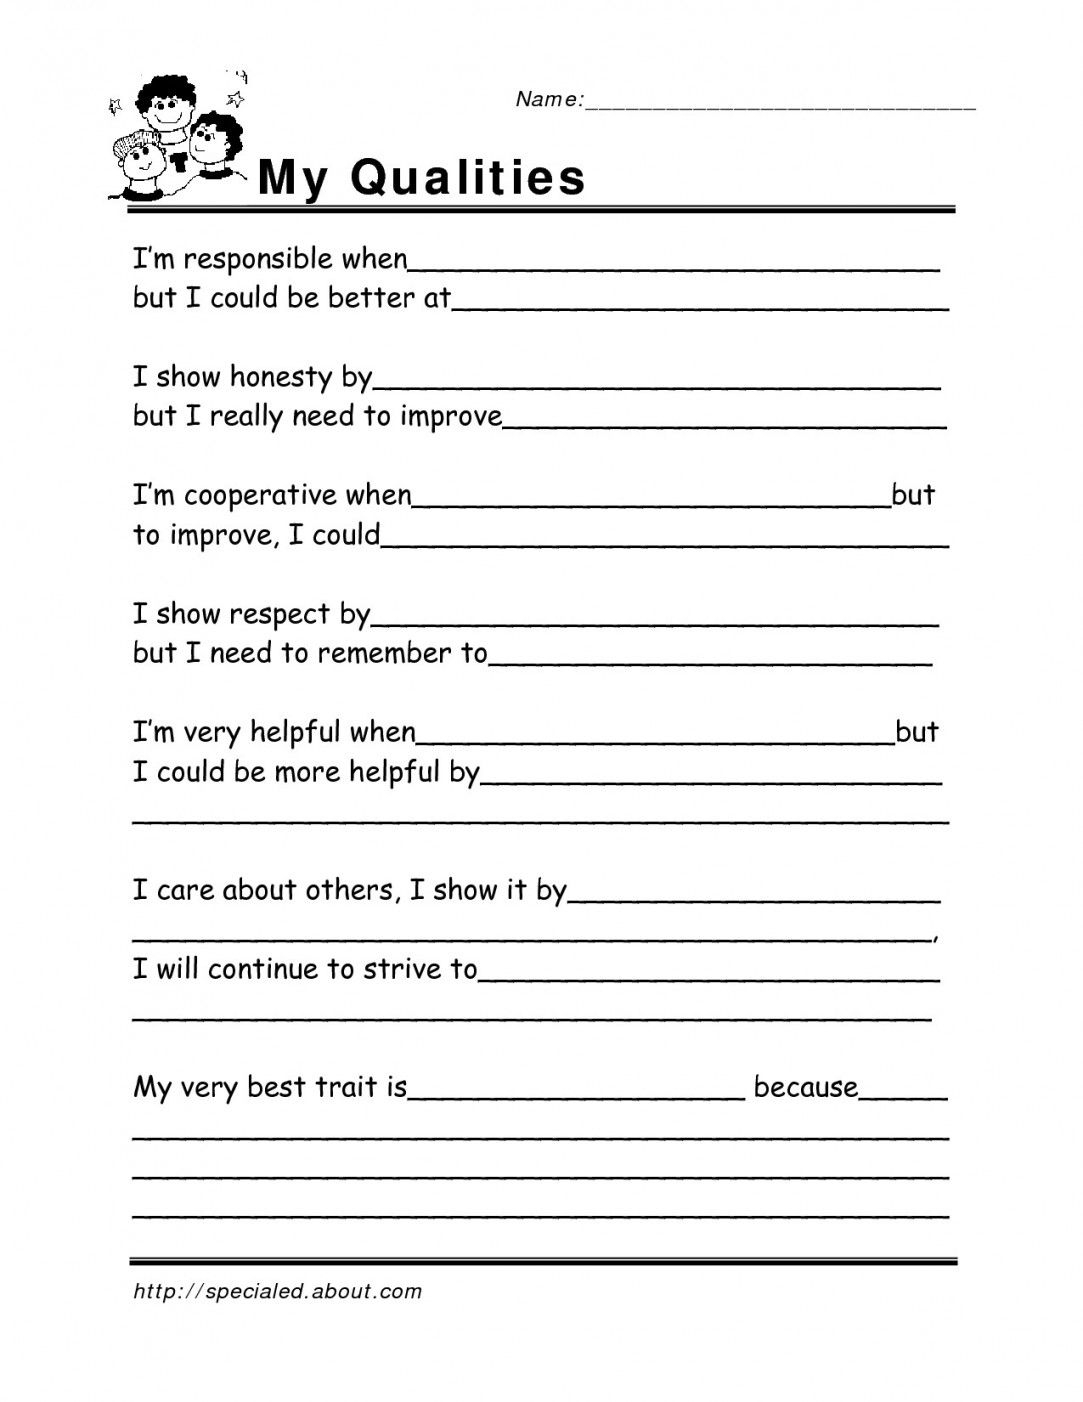 Free Printable Coping Skills Worksheets | Lostranquillos - Free Printable Coping Skills Worksheets